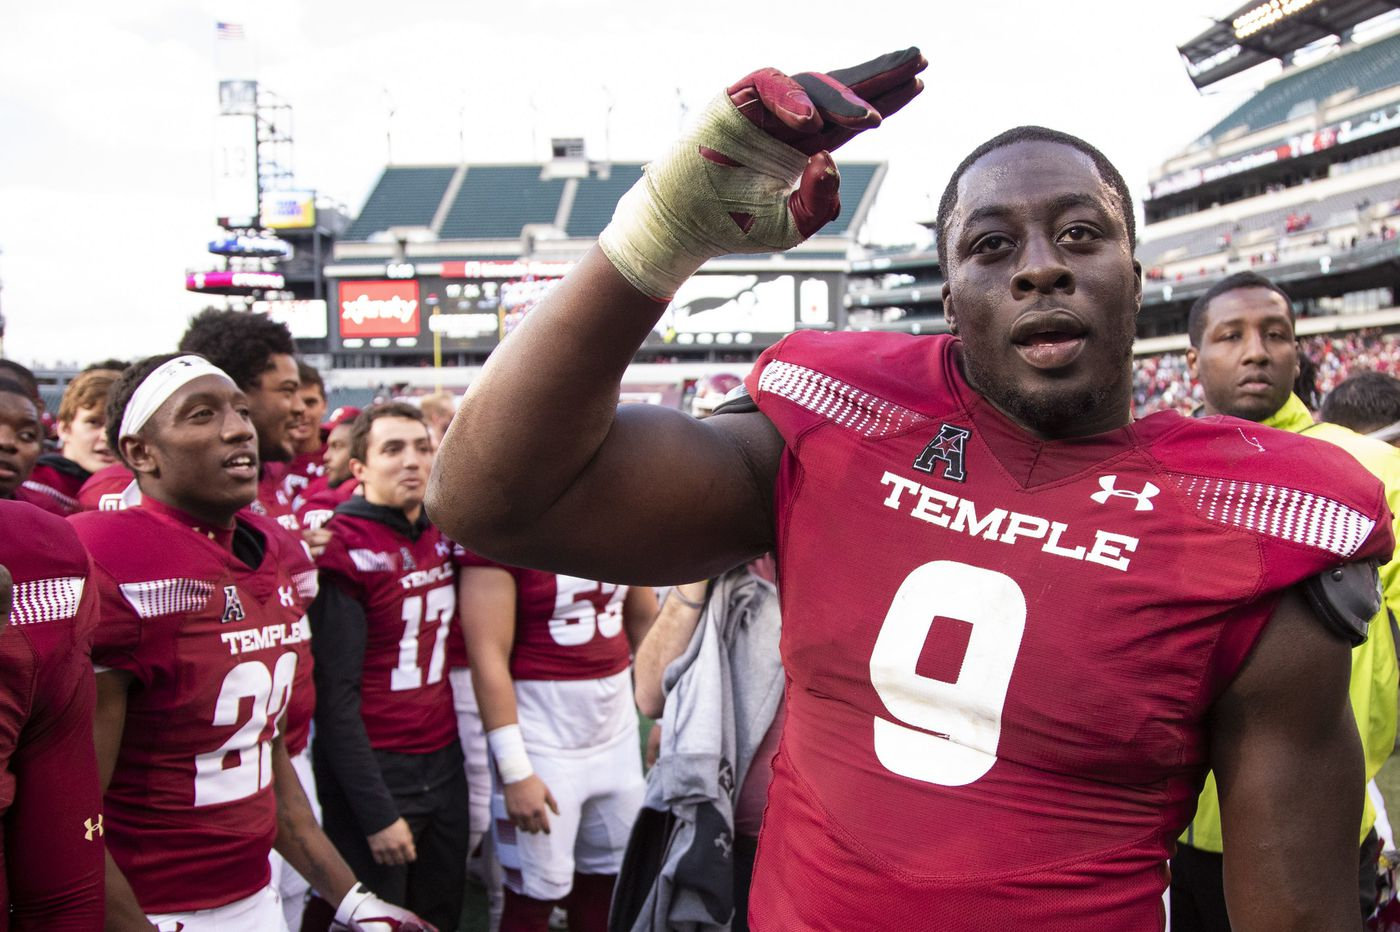 Senior day should be emotional for Temple football team